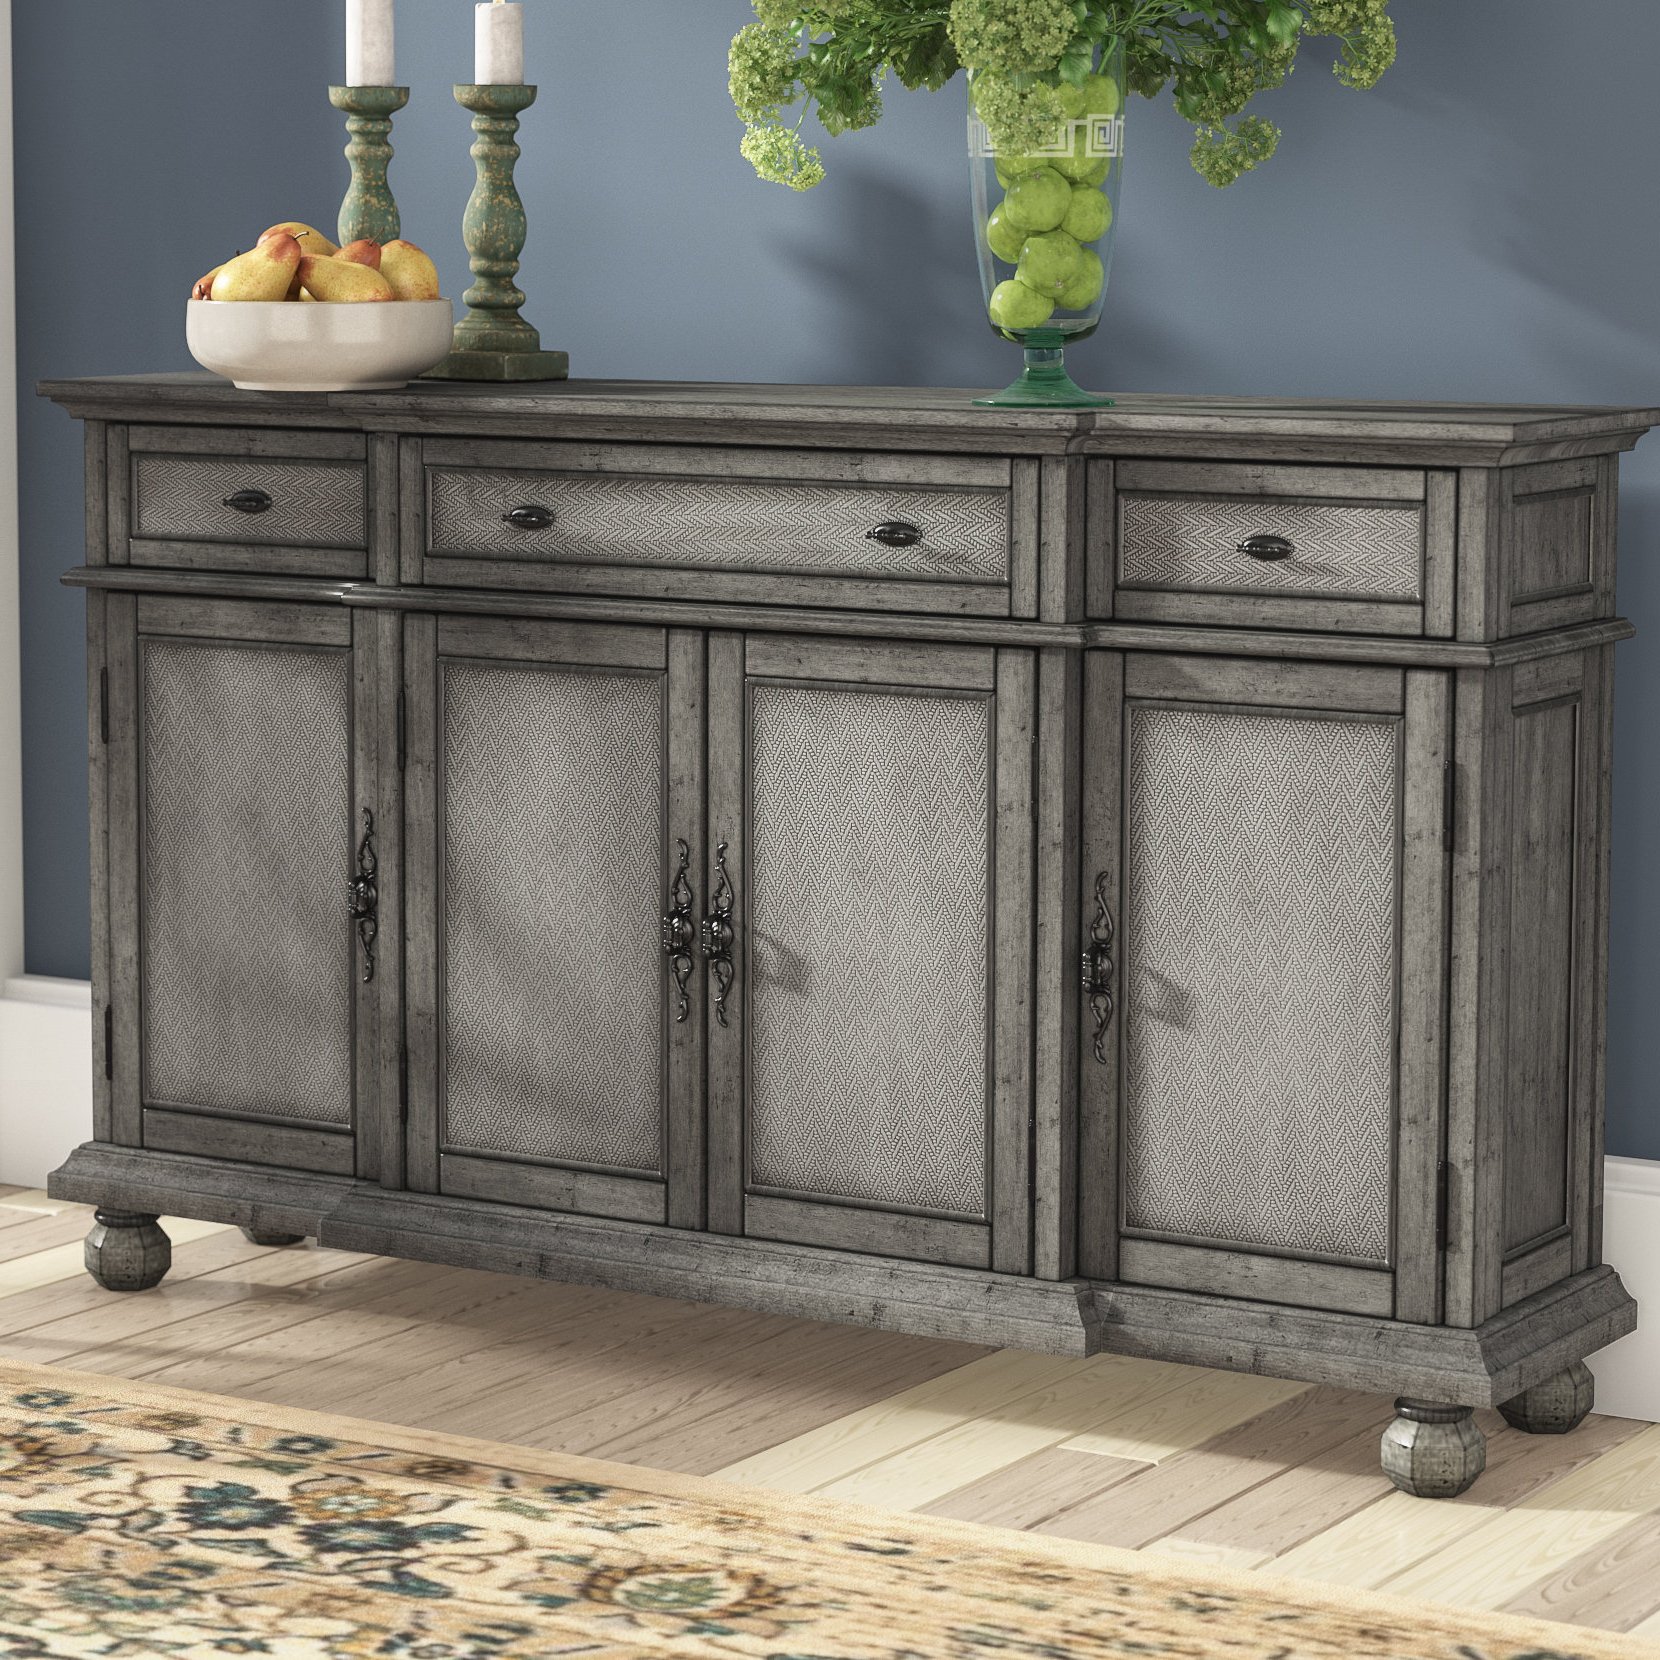 Living Room Credenza | Wayfair Within Deana Credenzas (View 7 of 20)